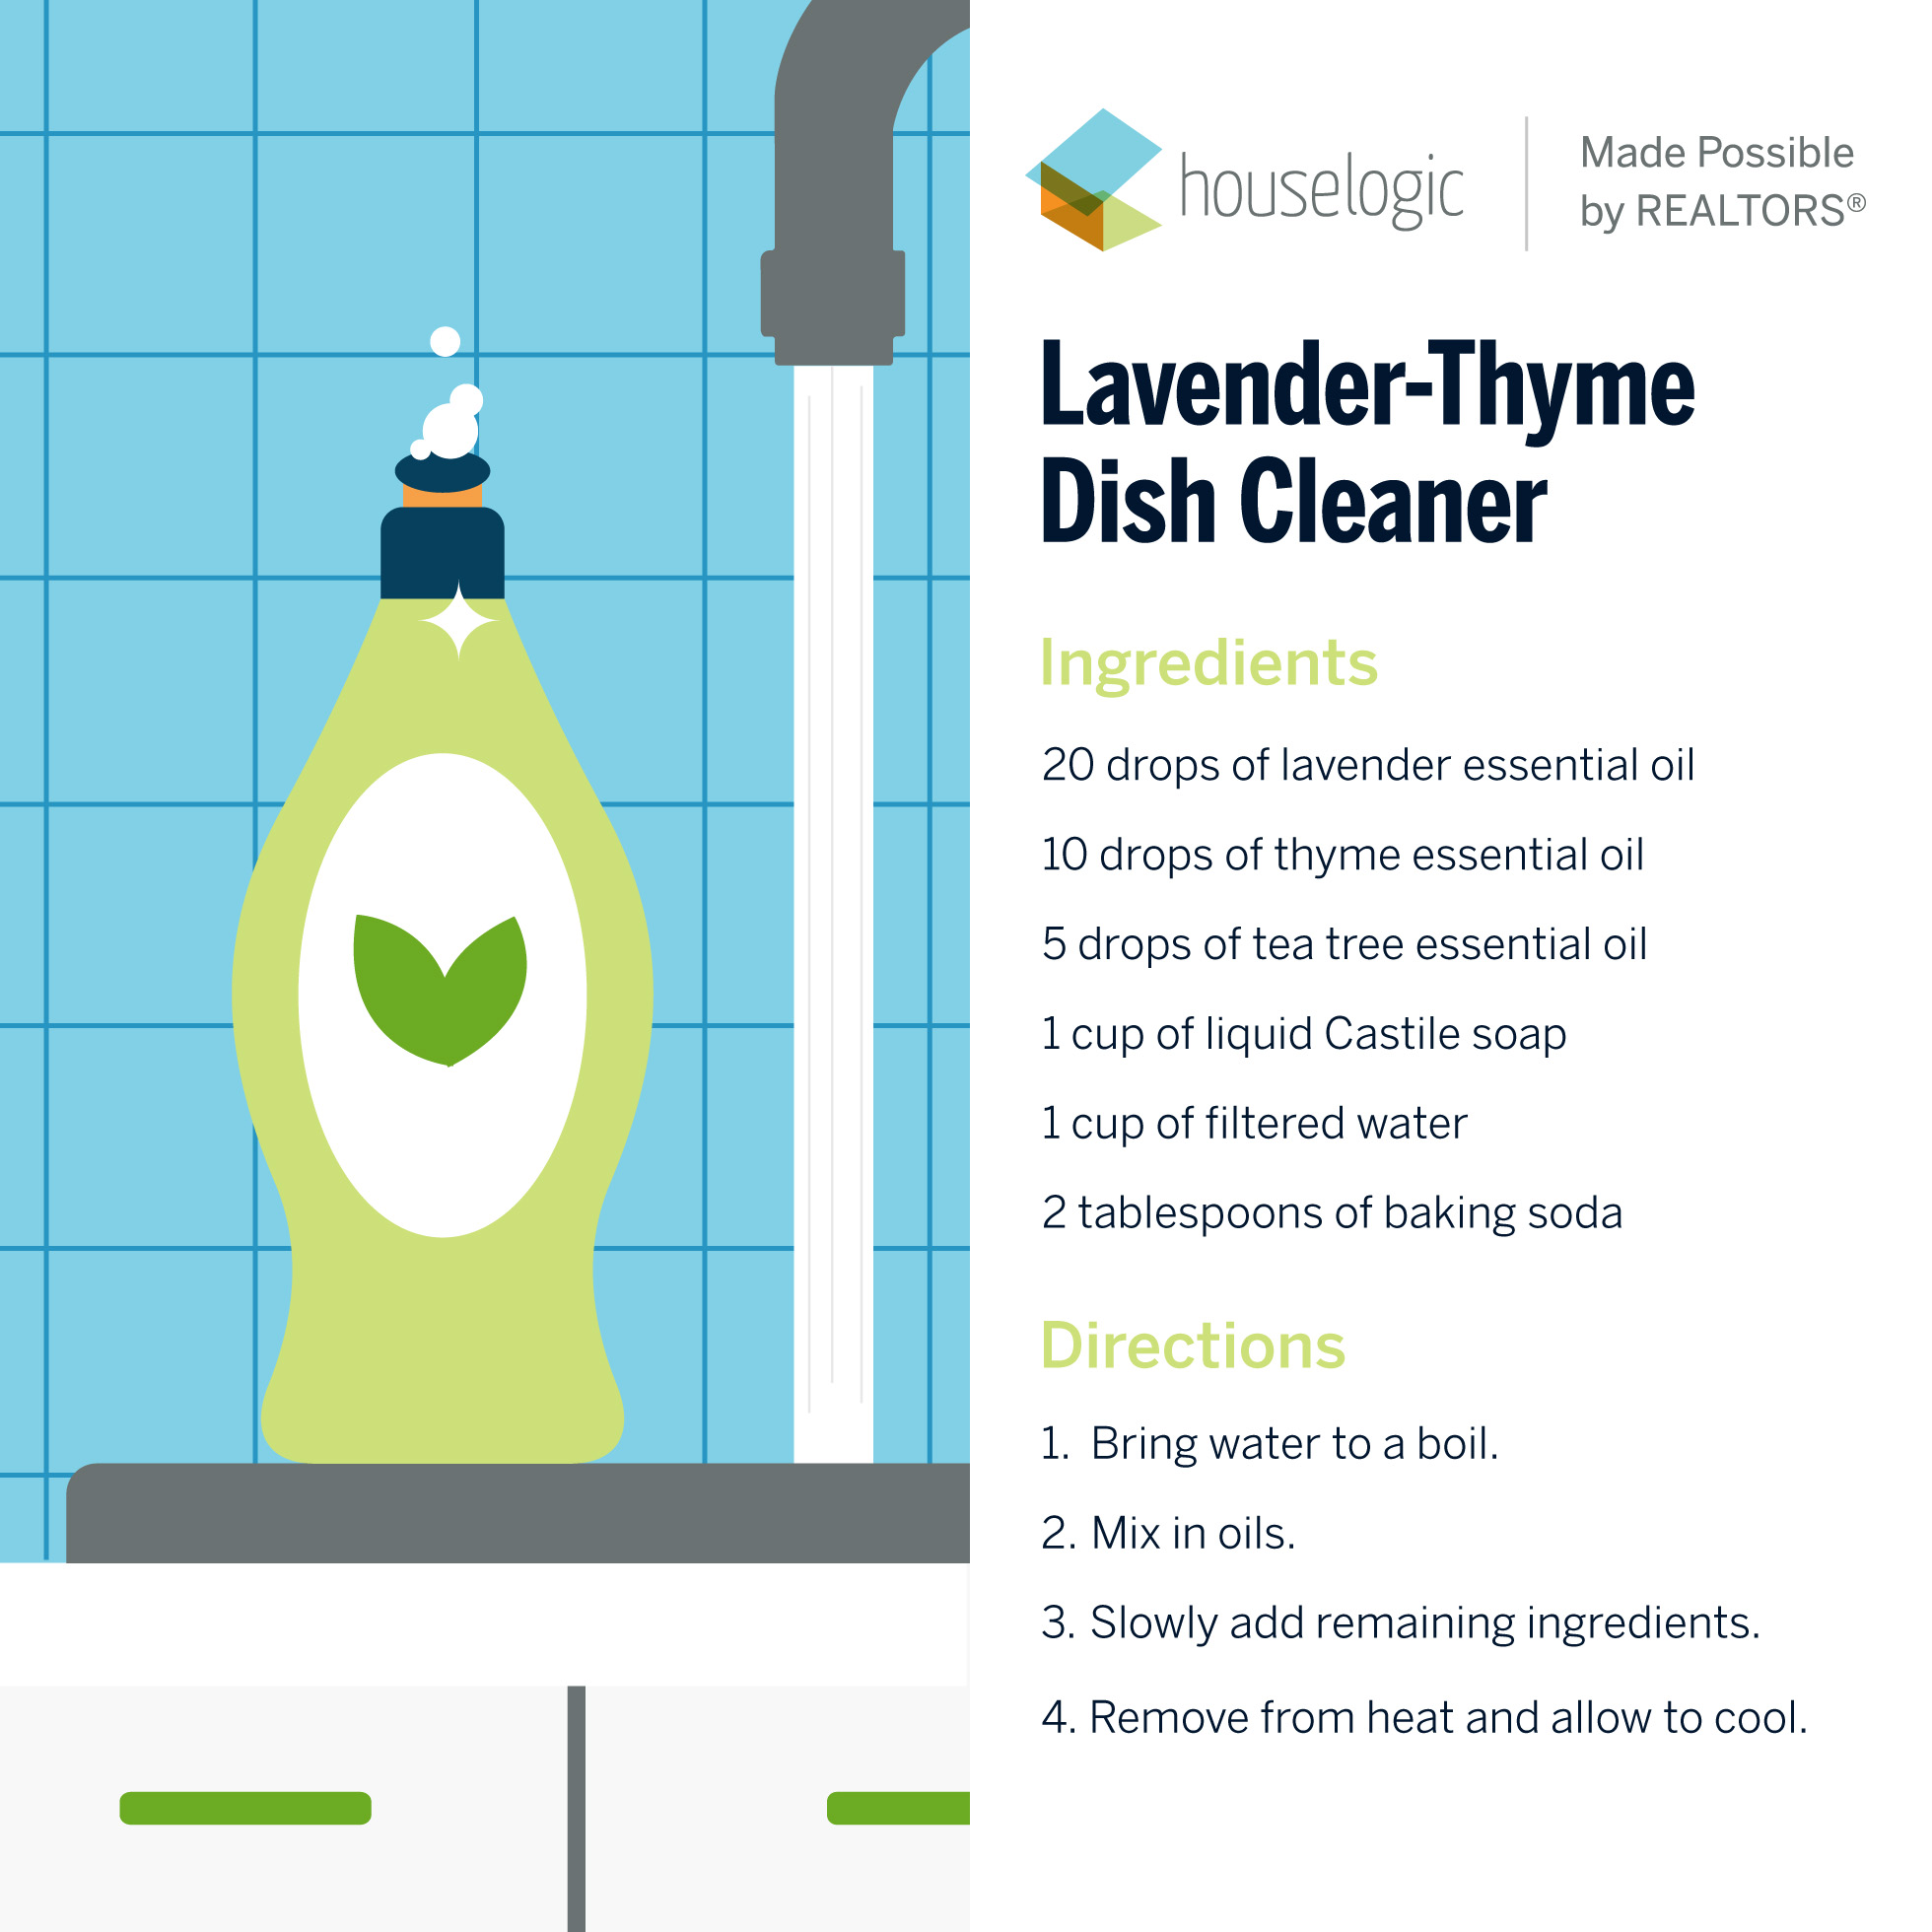 Recipe for homemade lavender-thyme dish cleaner